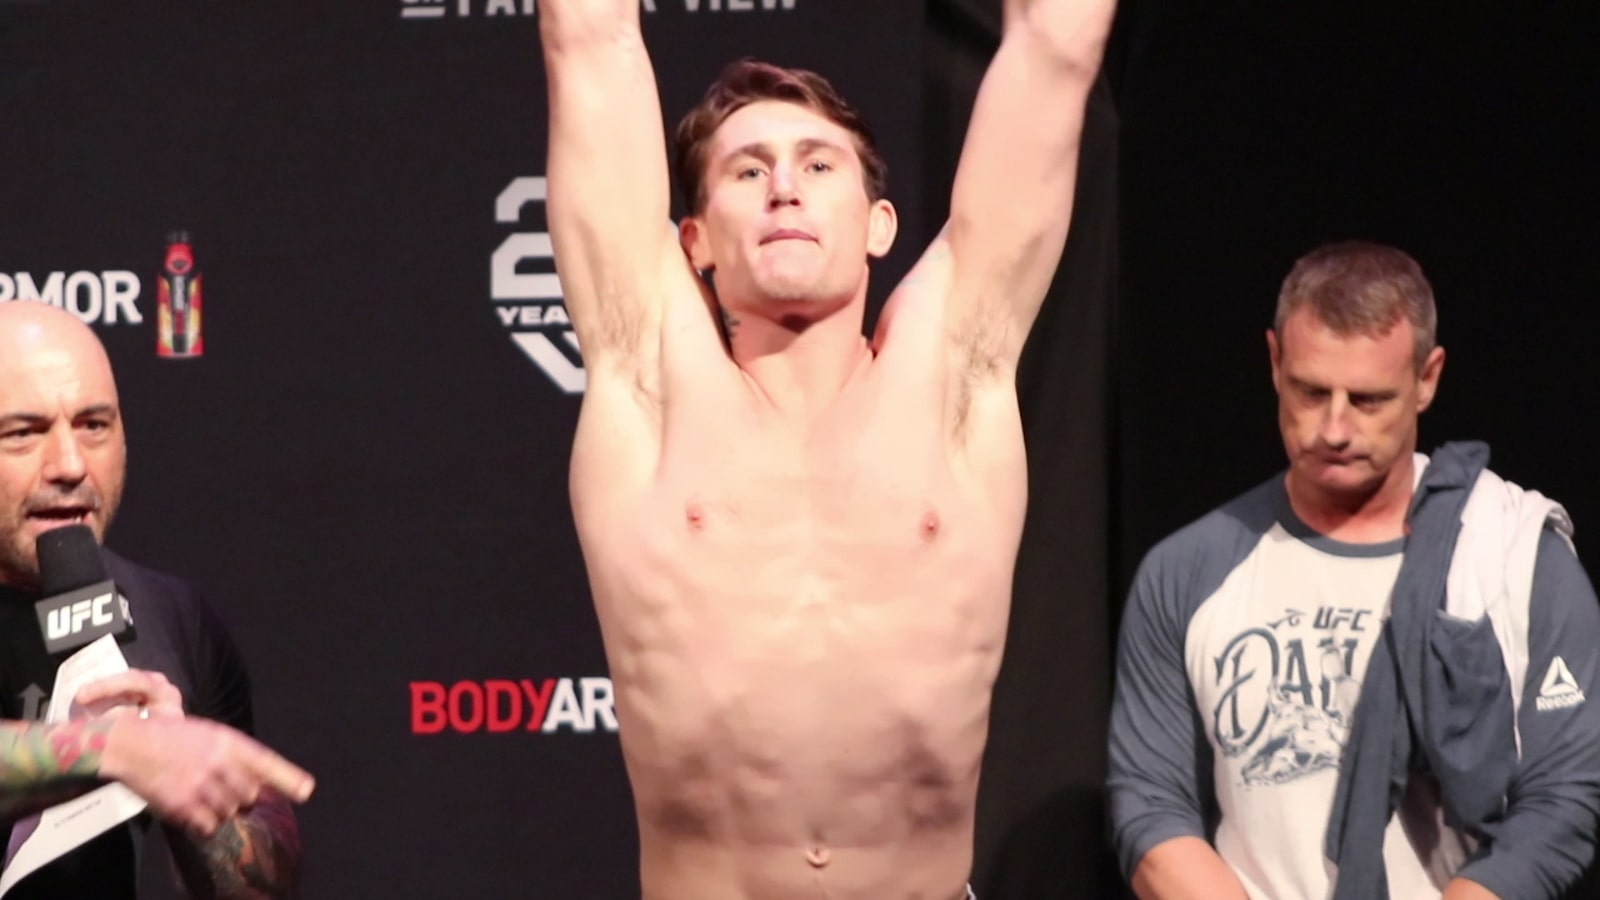 Till Says He Has Unfinished Business With 'D***head' Covington